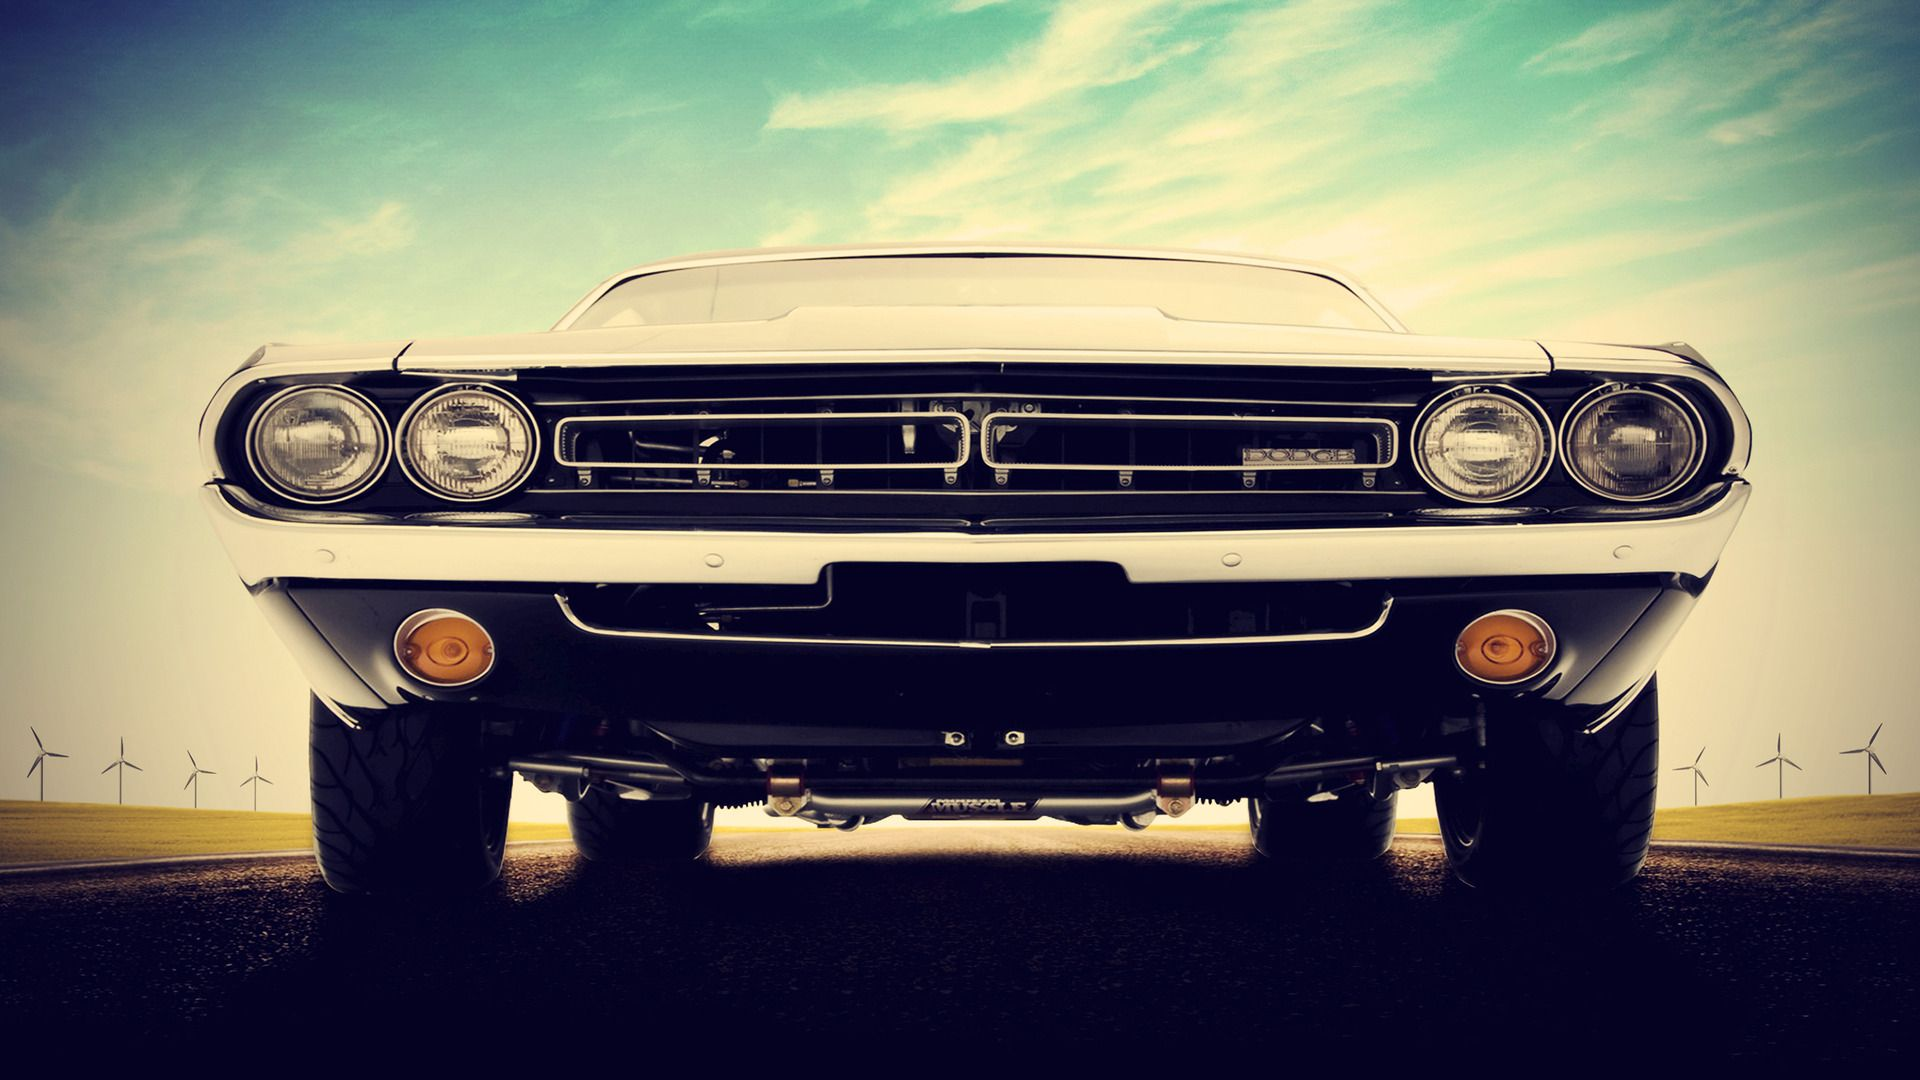 1970 Dodge Charger Hd Background Wallpaper Hd Car Wallpaper Dodge Challenger Muscle Cars Challenger Rt